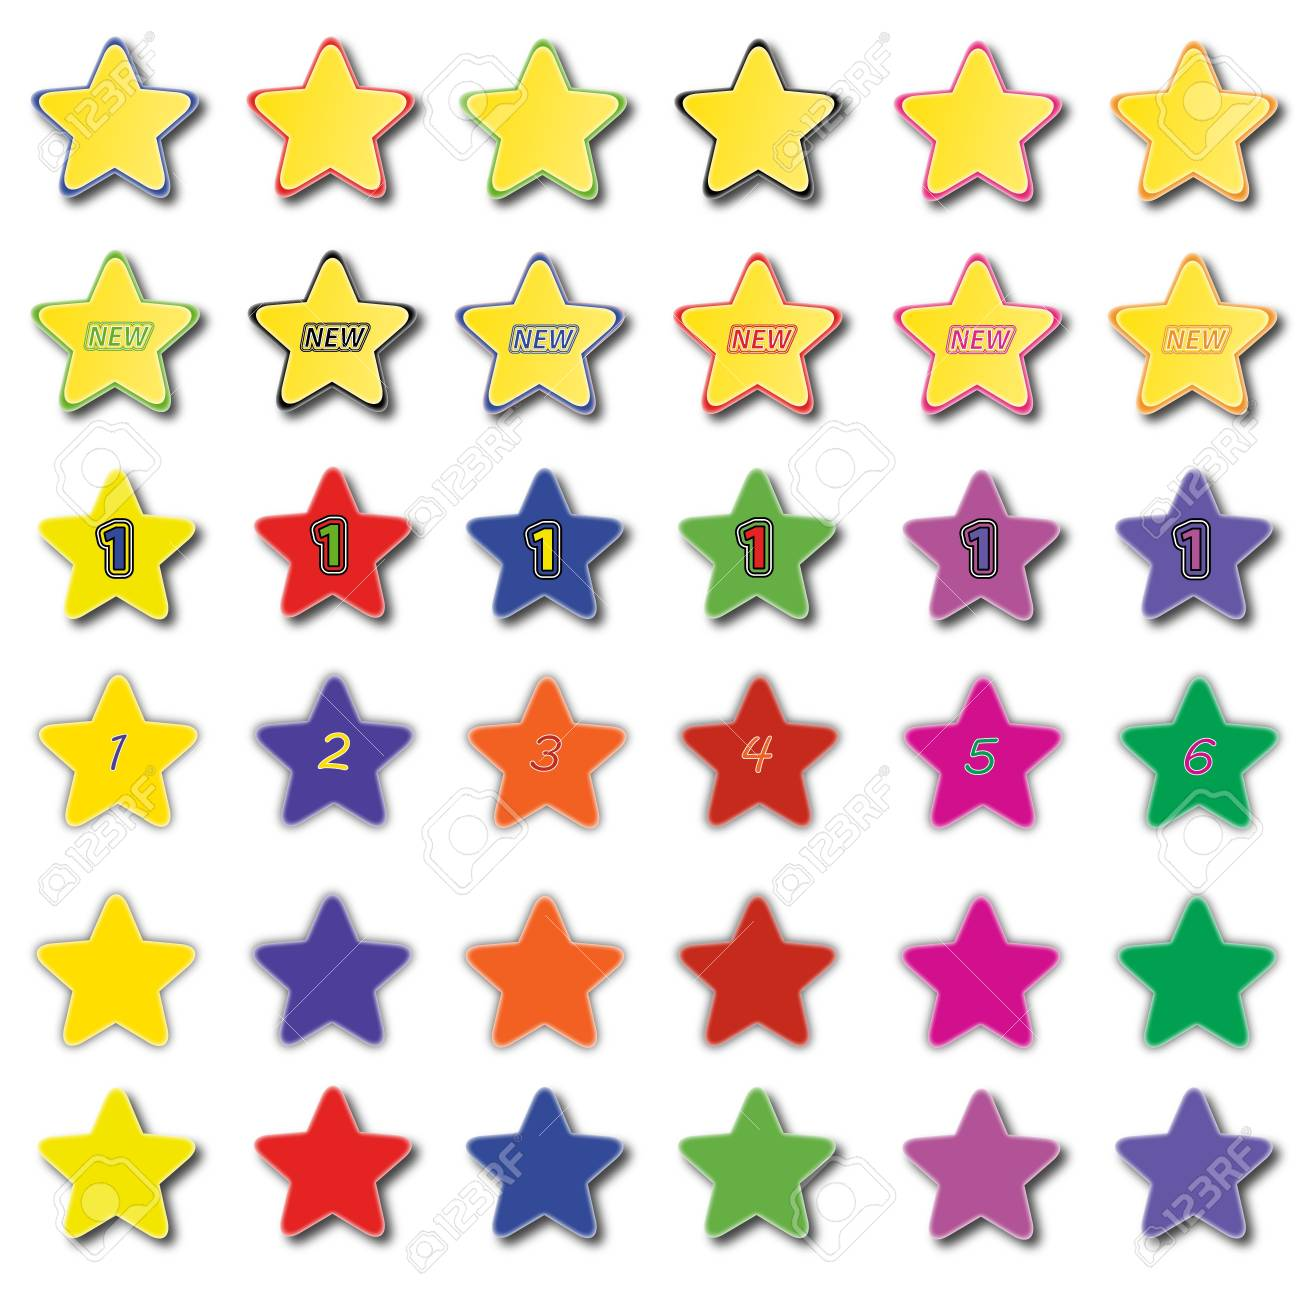 Set of various colored star icons Stock Vector - 14791642